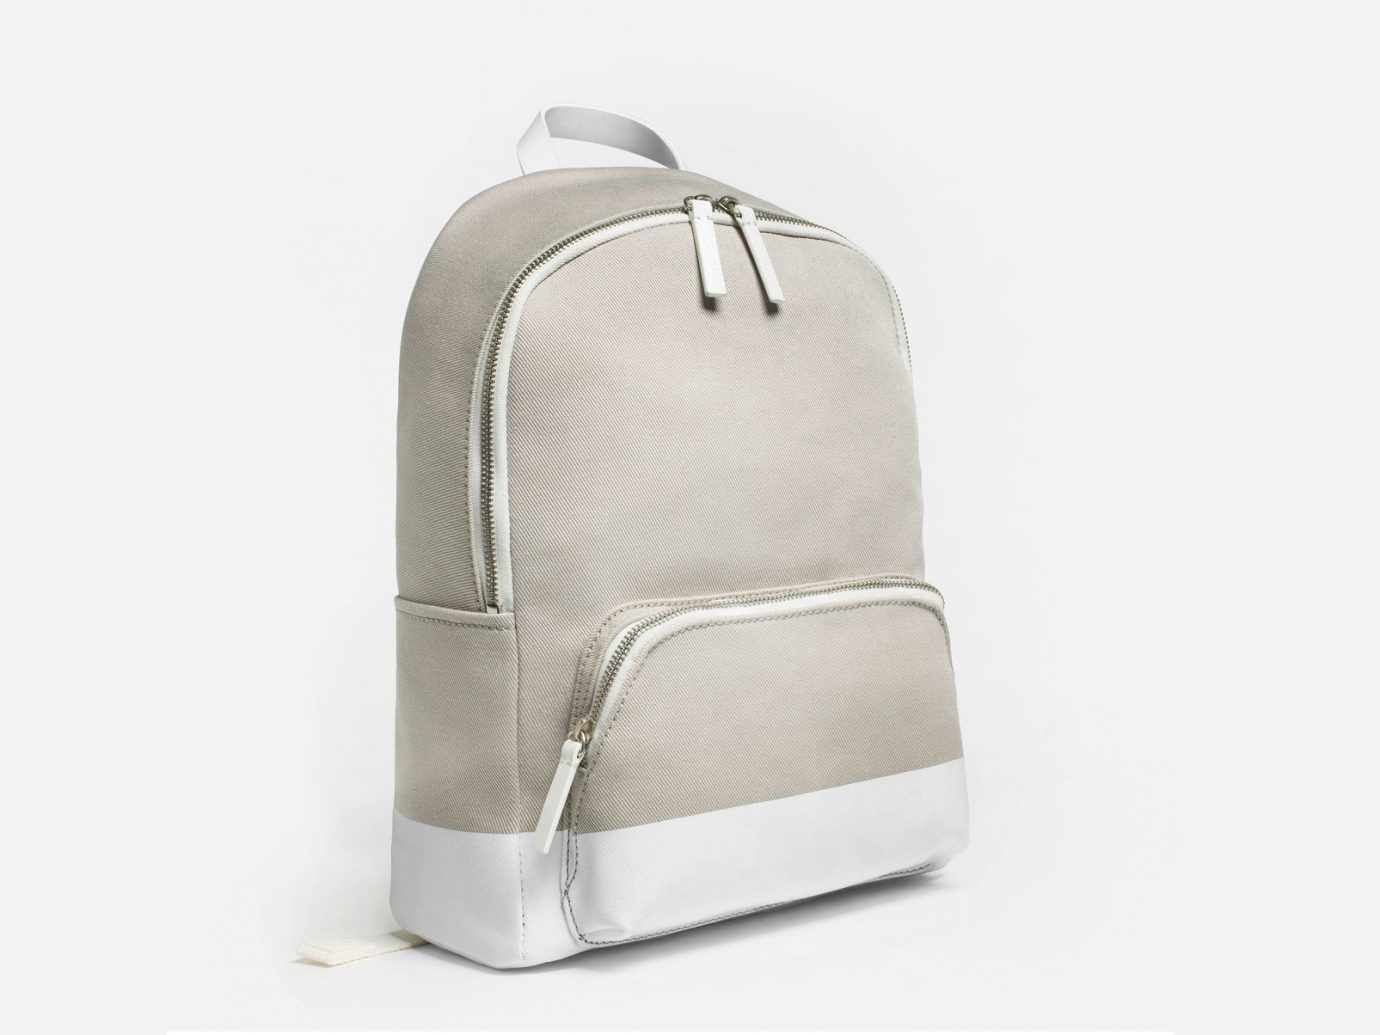 Style + Design indoor bag white product accessory leather furniture footwear beige handbag textile chair backpack case